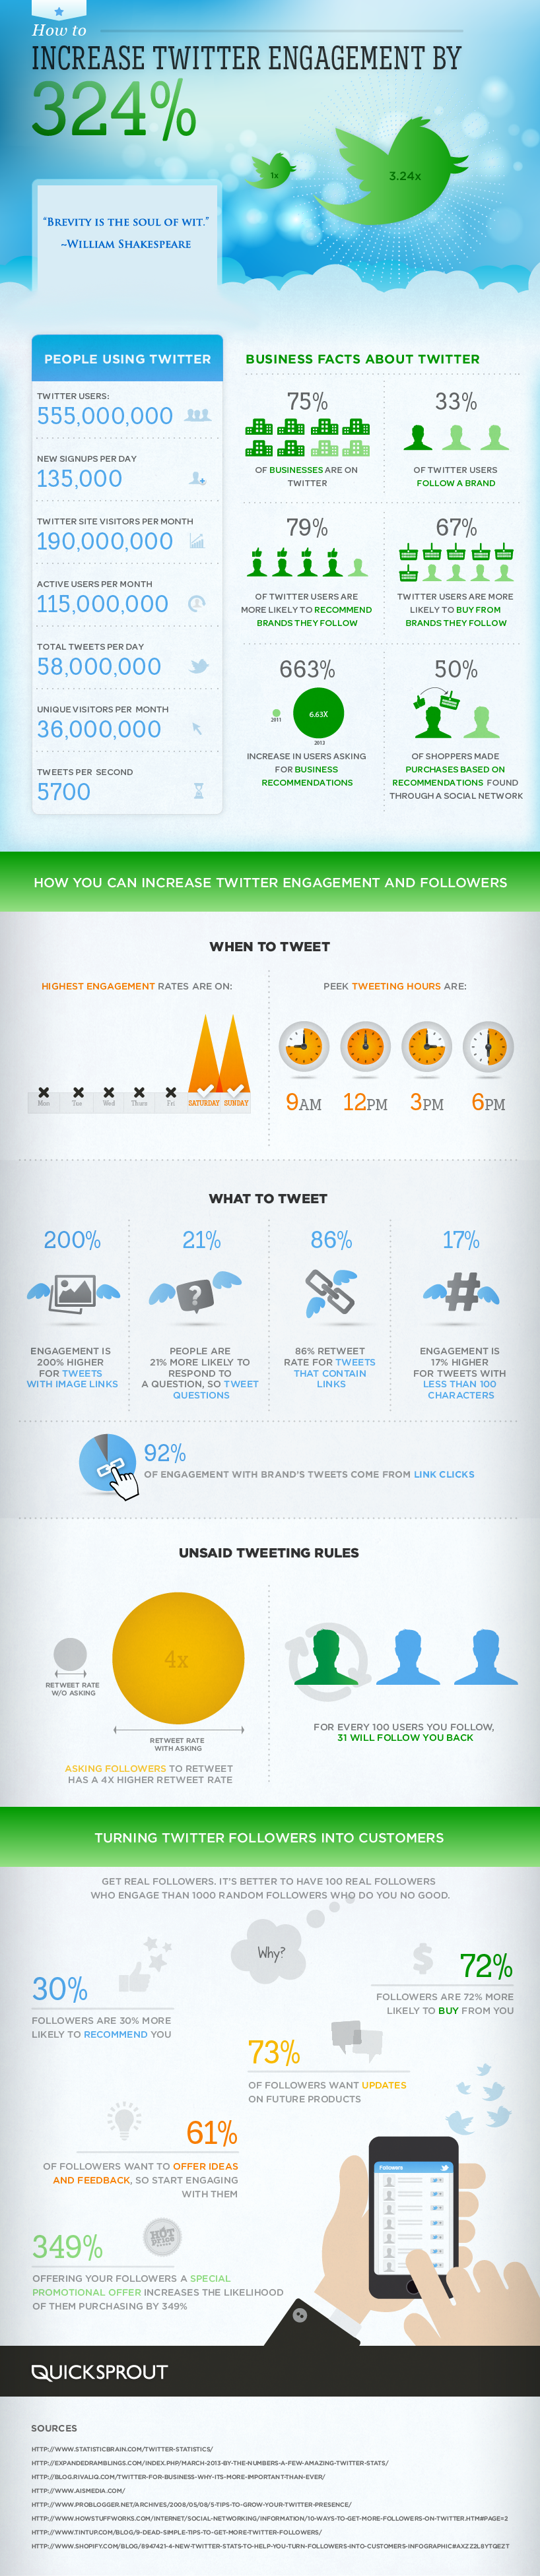 how-to-triple-your-twitter-engagement-infographic